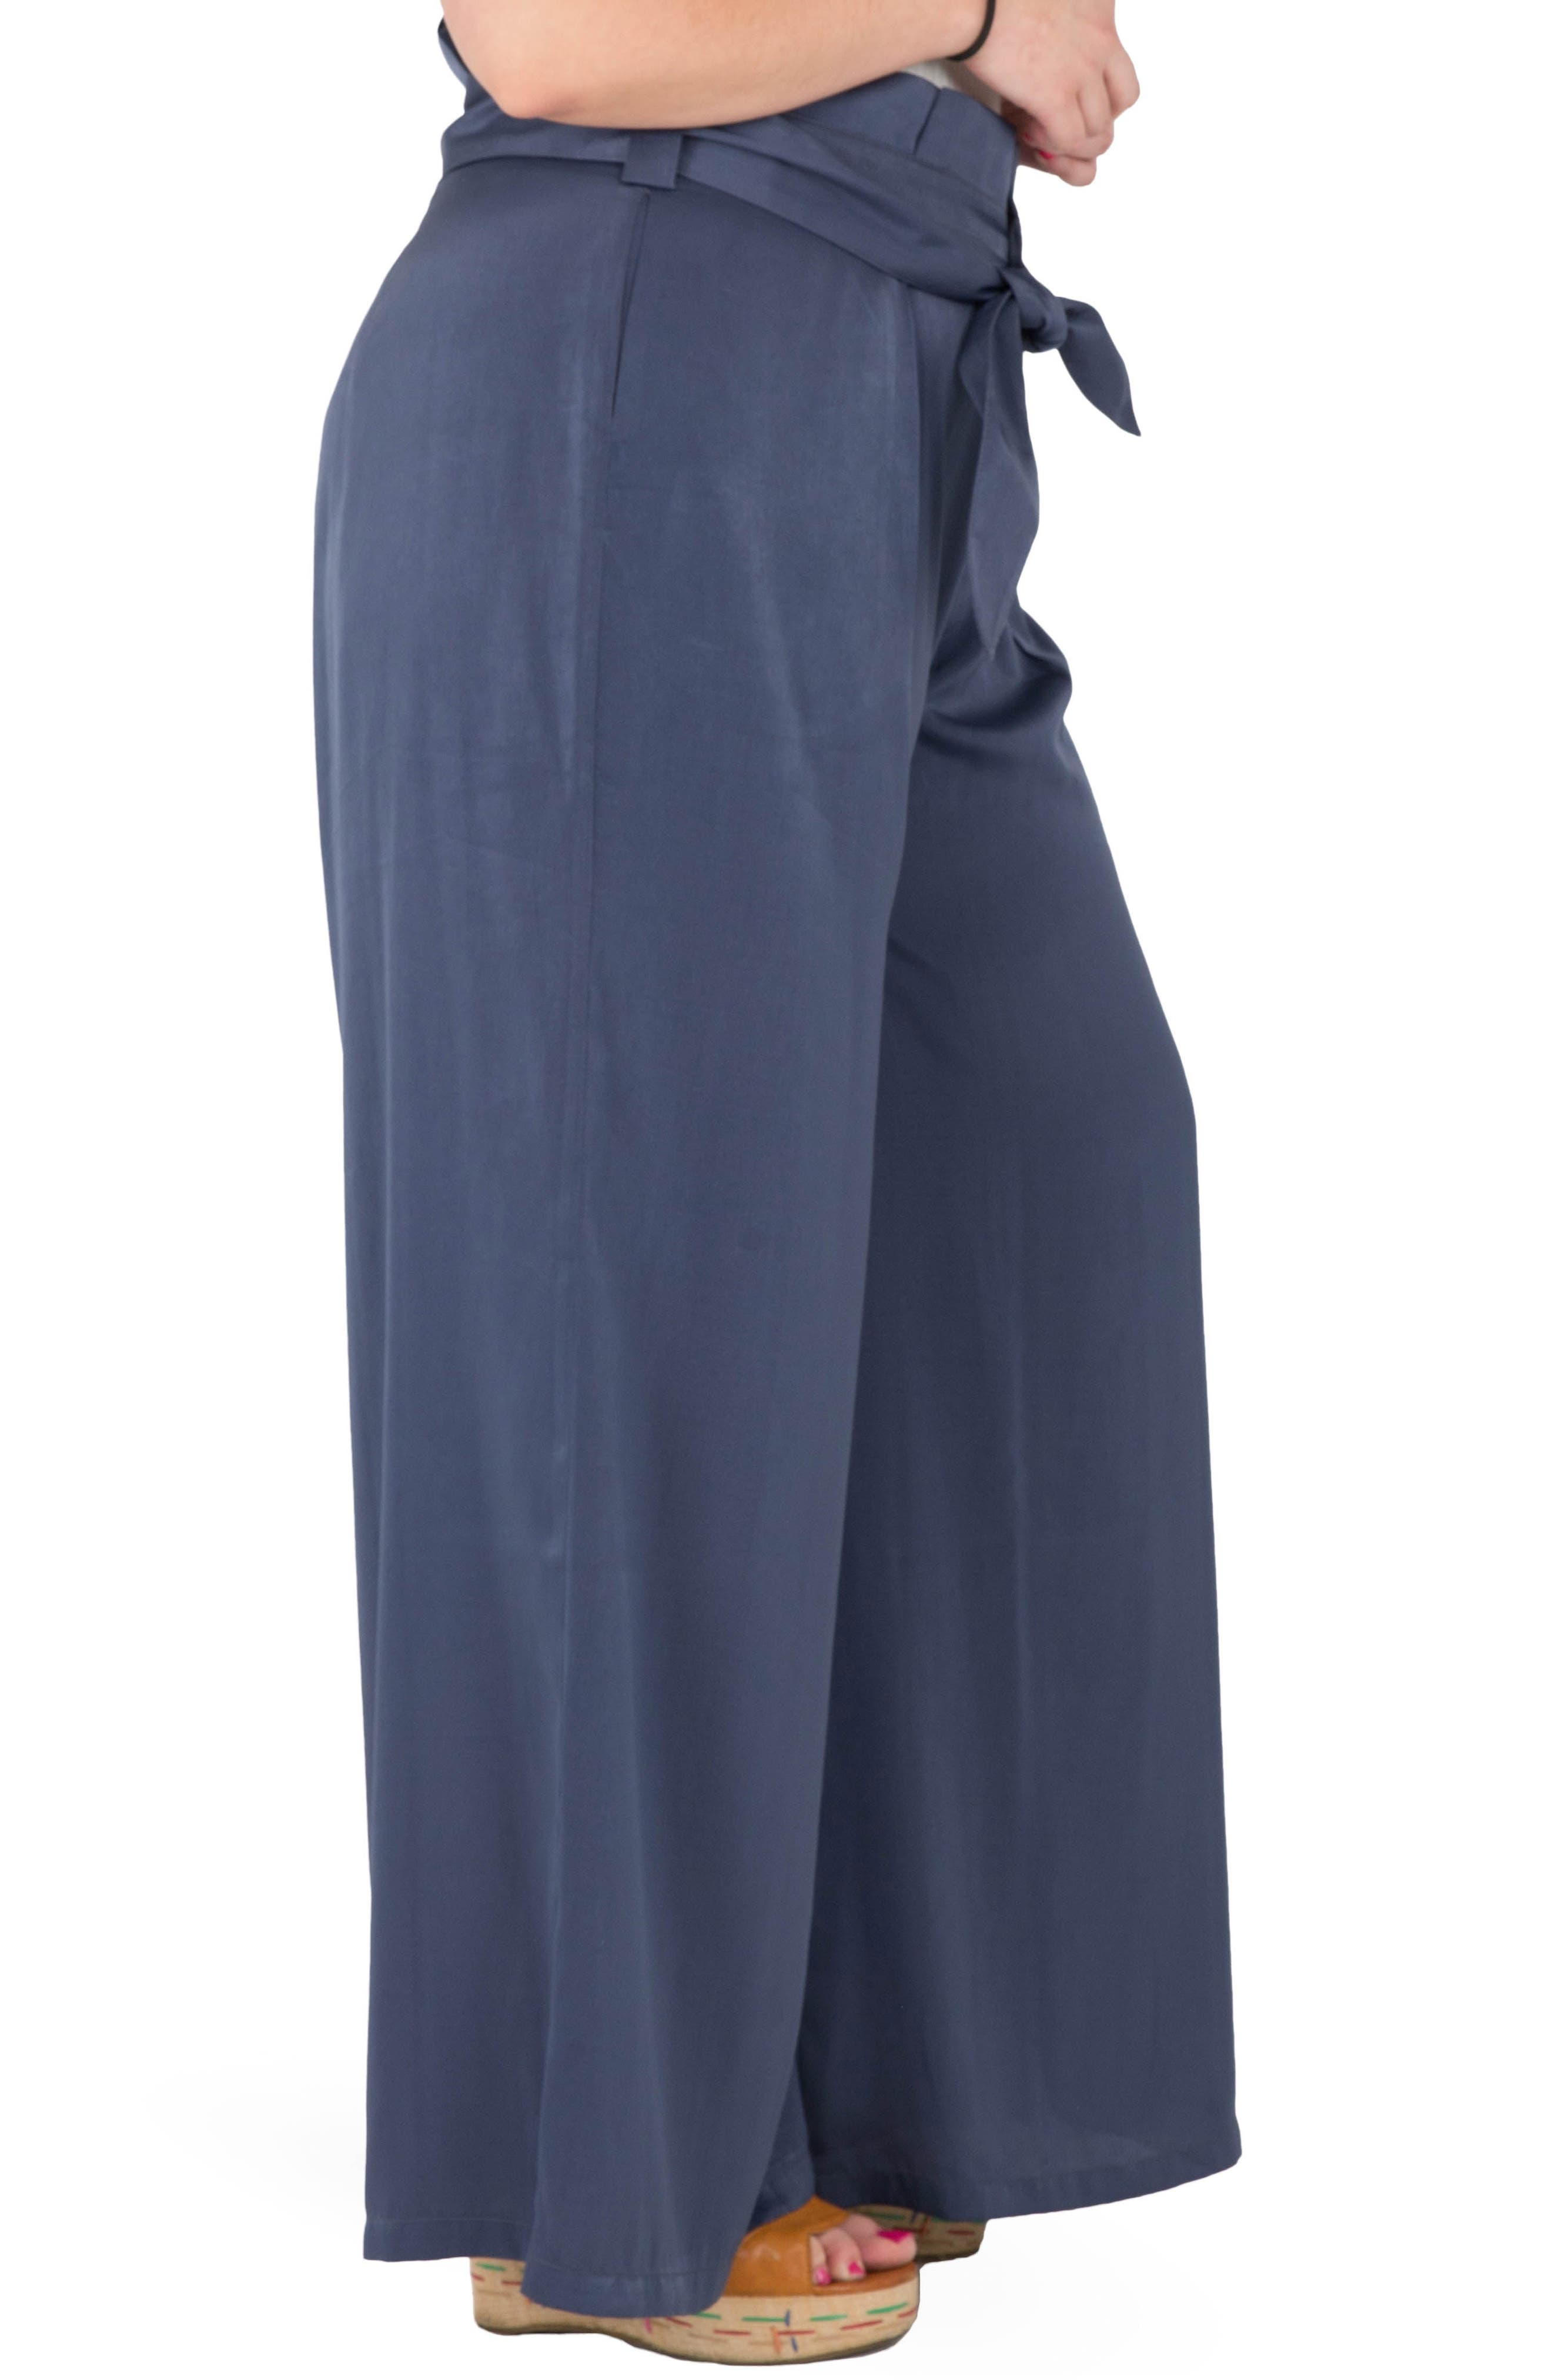 Sue Wide Leg Pants,                             Alternate thumbnail 3, color,                             NAVY